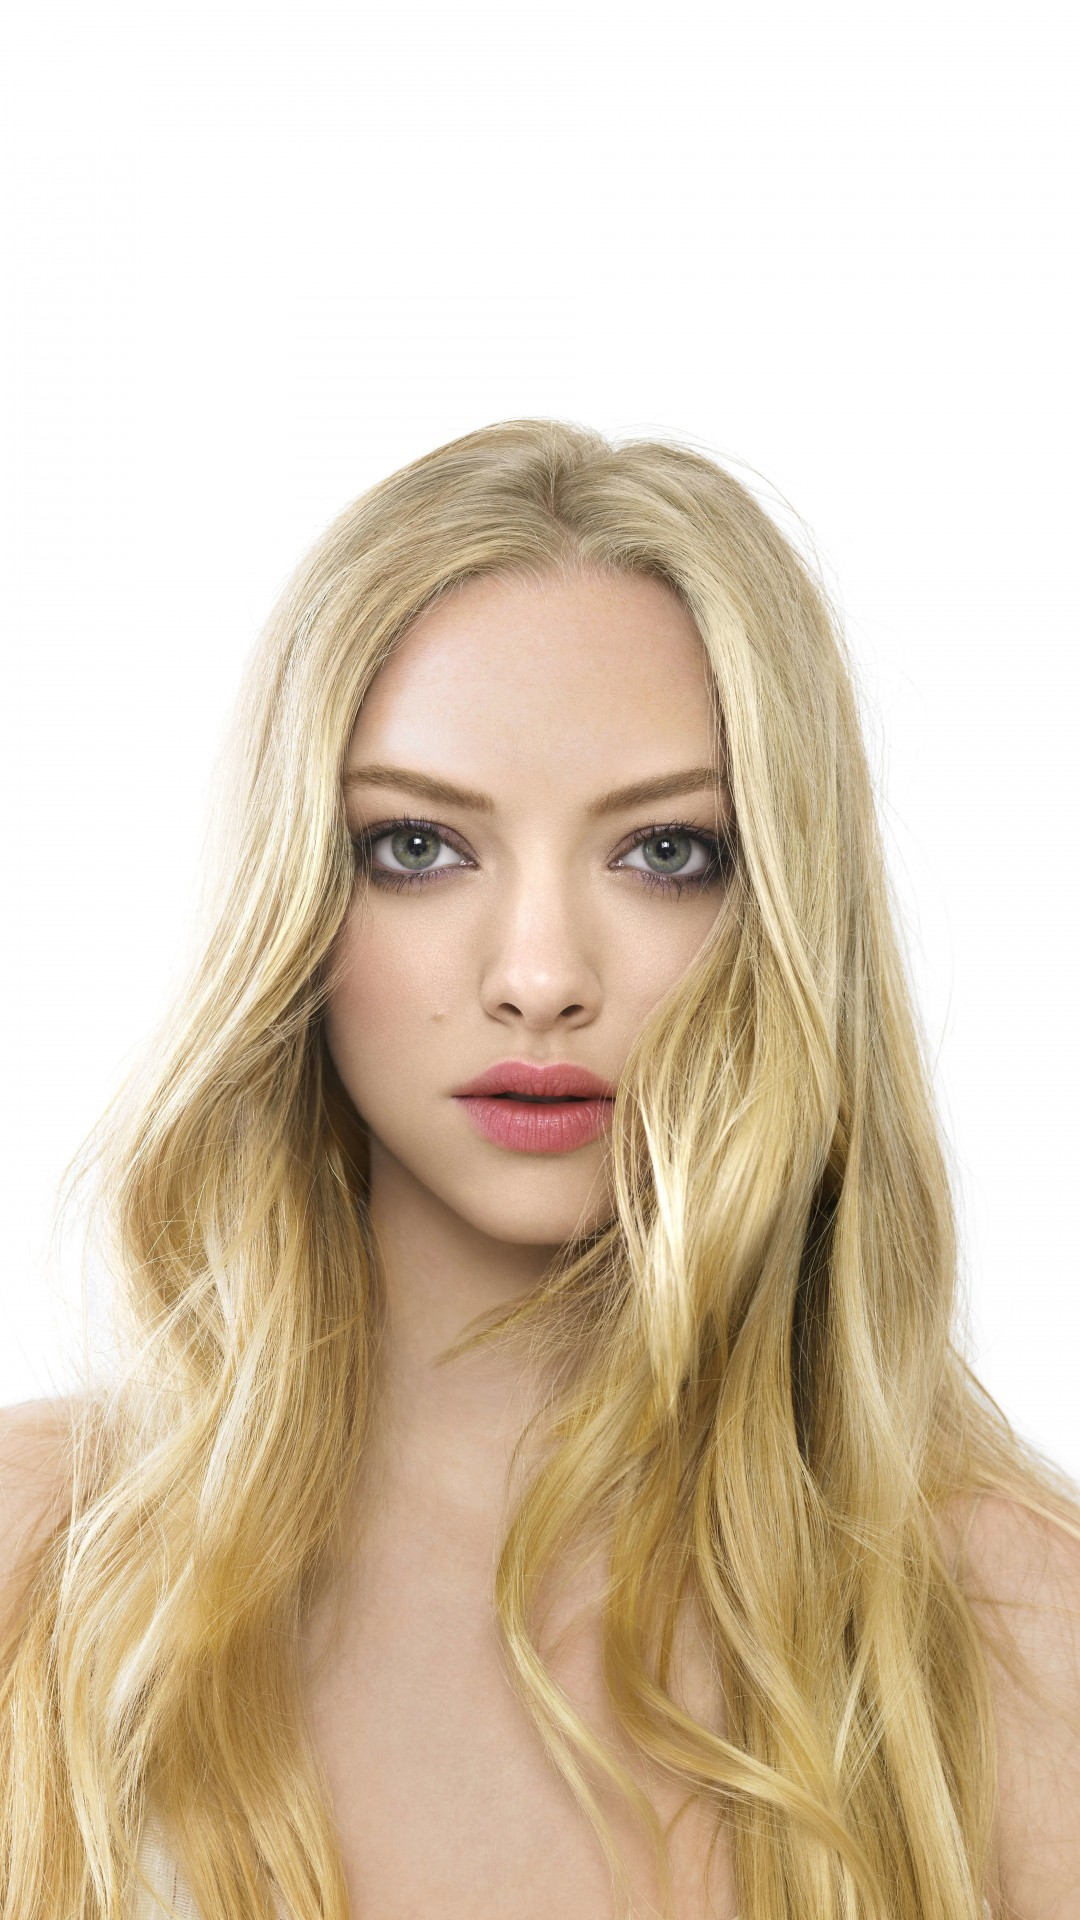 Amanda Seyfried Portrait Wallpaper for LG G2